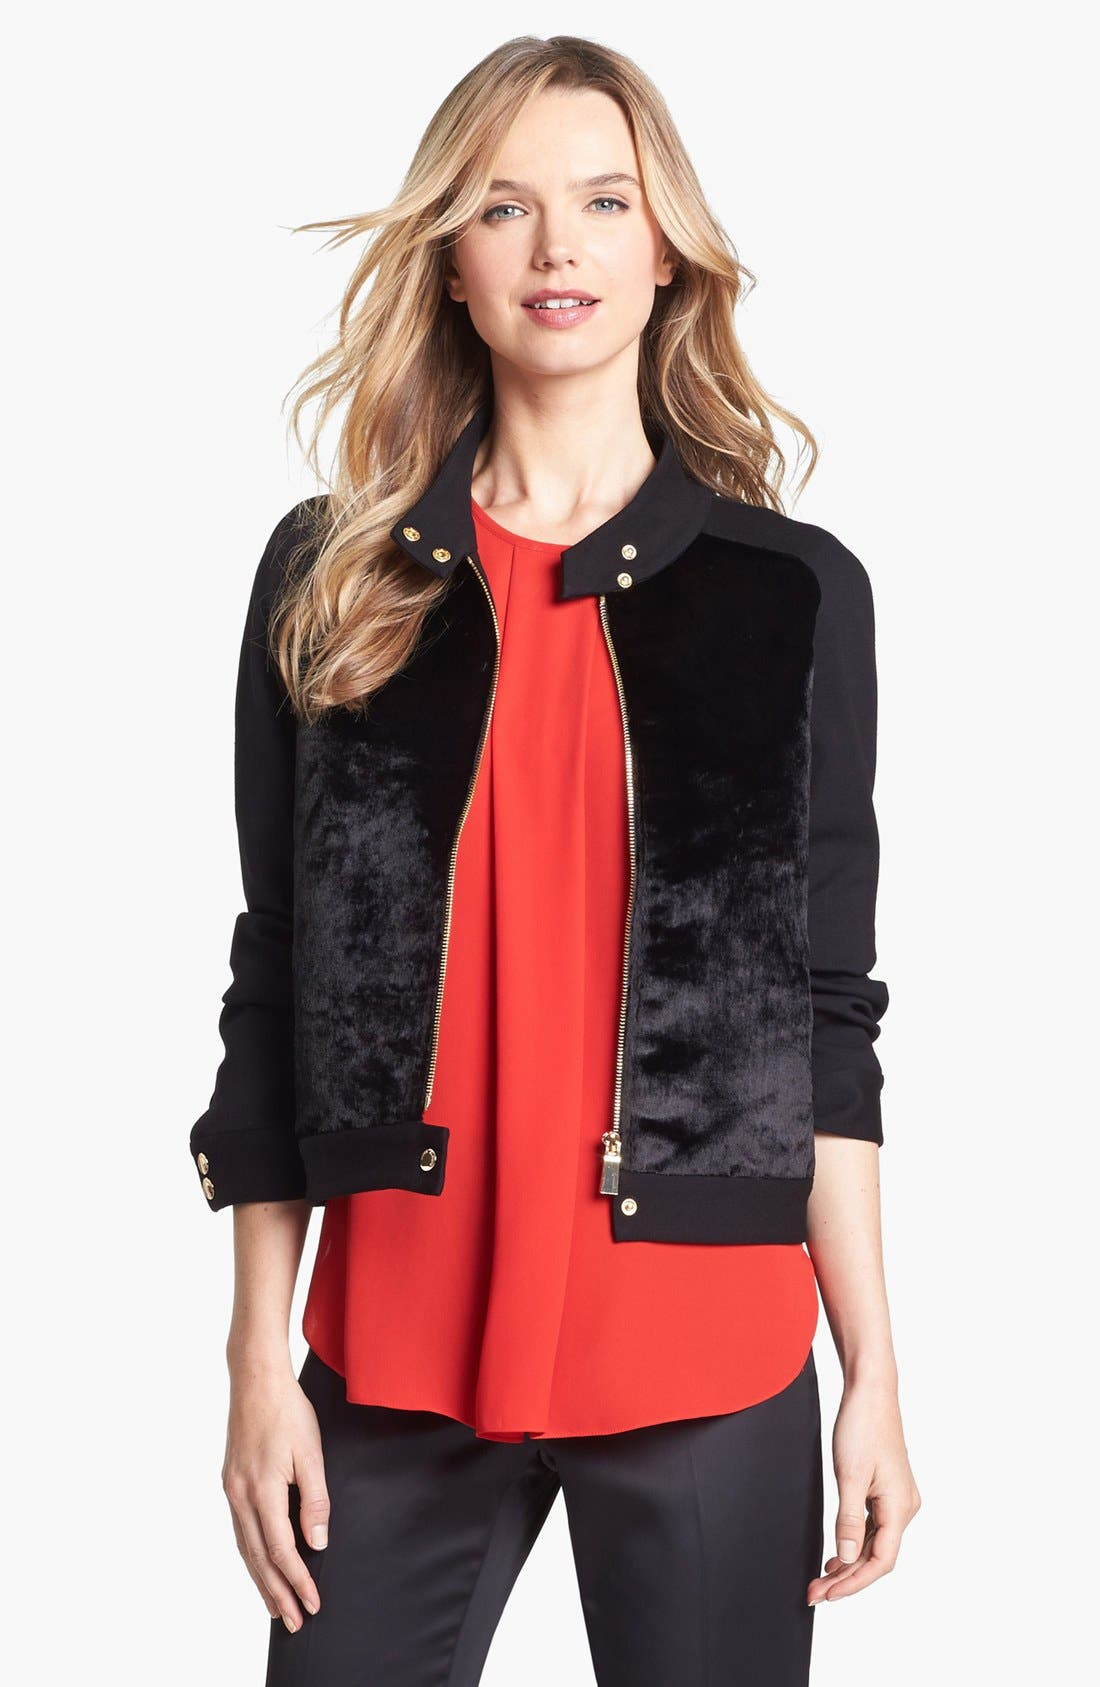 Alternate Image 1 Selected - Vince Camuto Faux Calf Hair & Ponte Knit Jacket